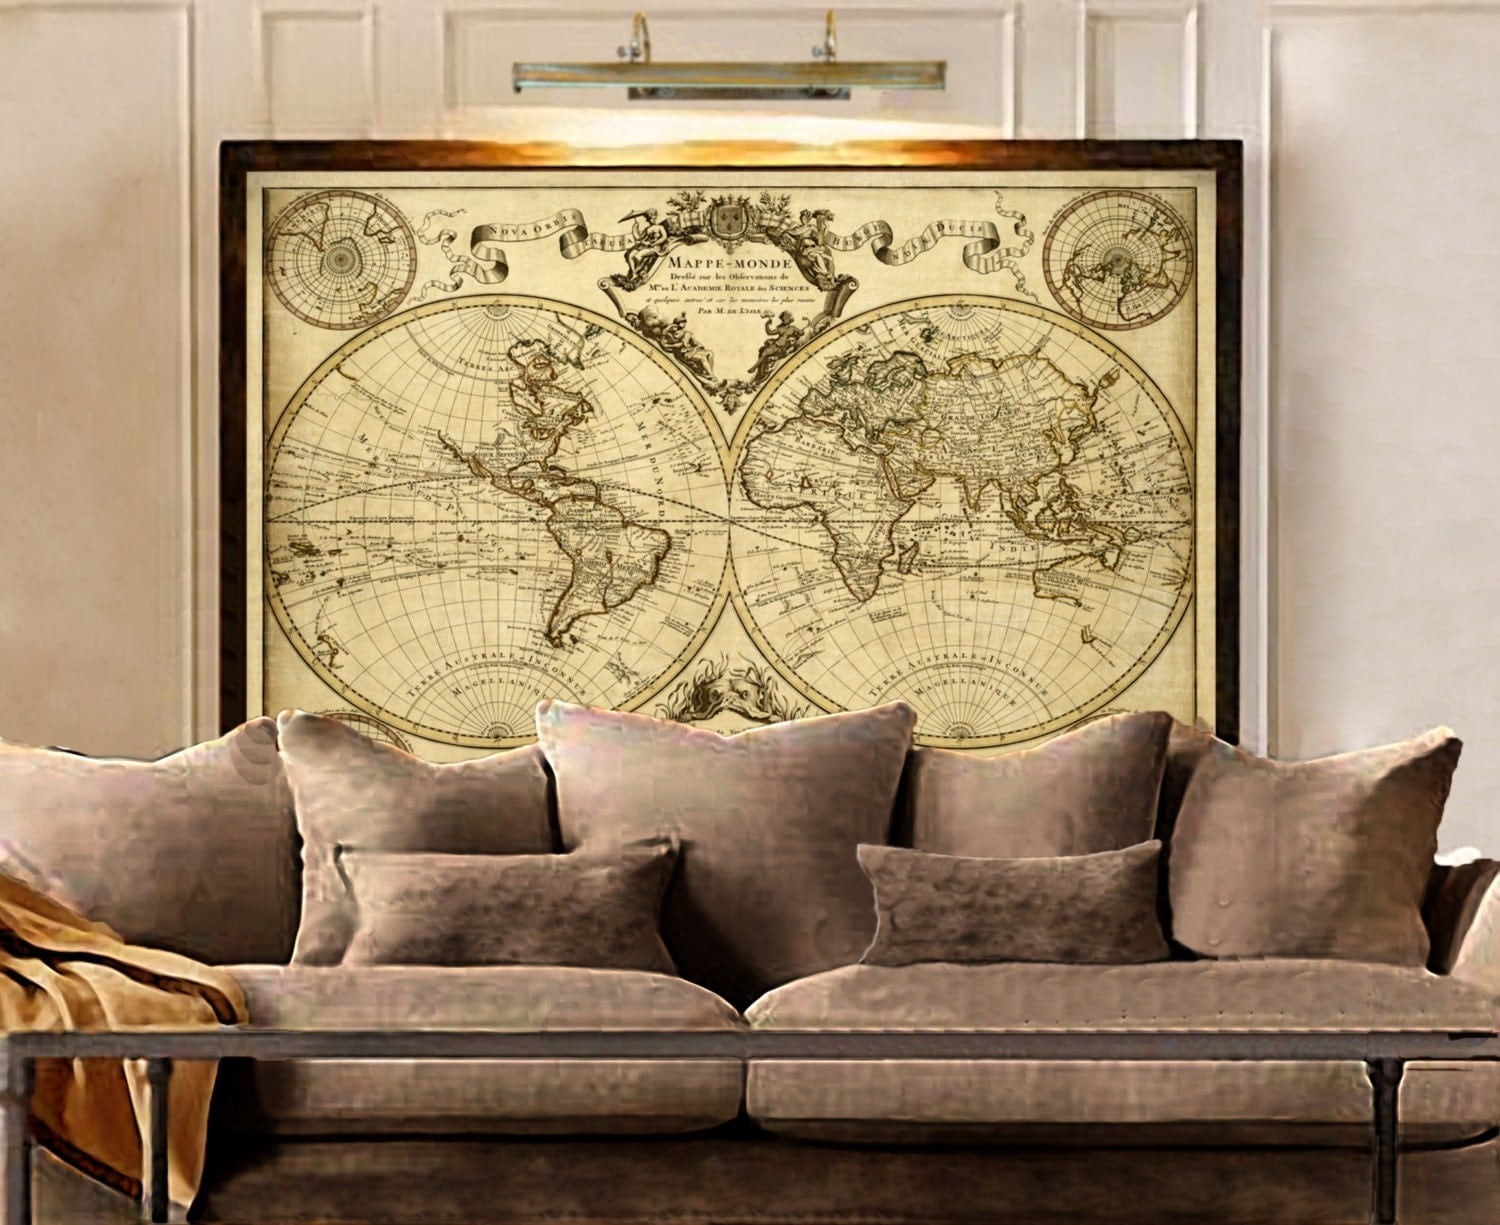 L Isle S 1720 Old World Map Historic Map Antique Style World Map Guillaume De L